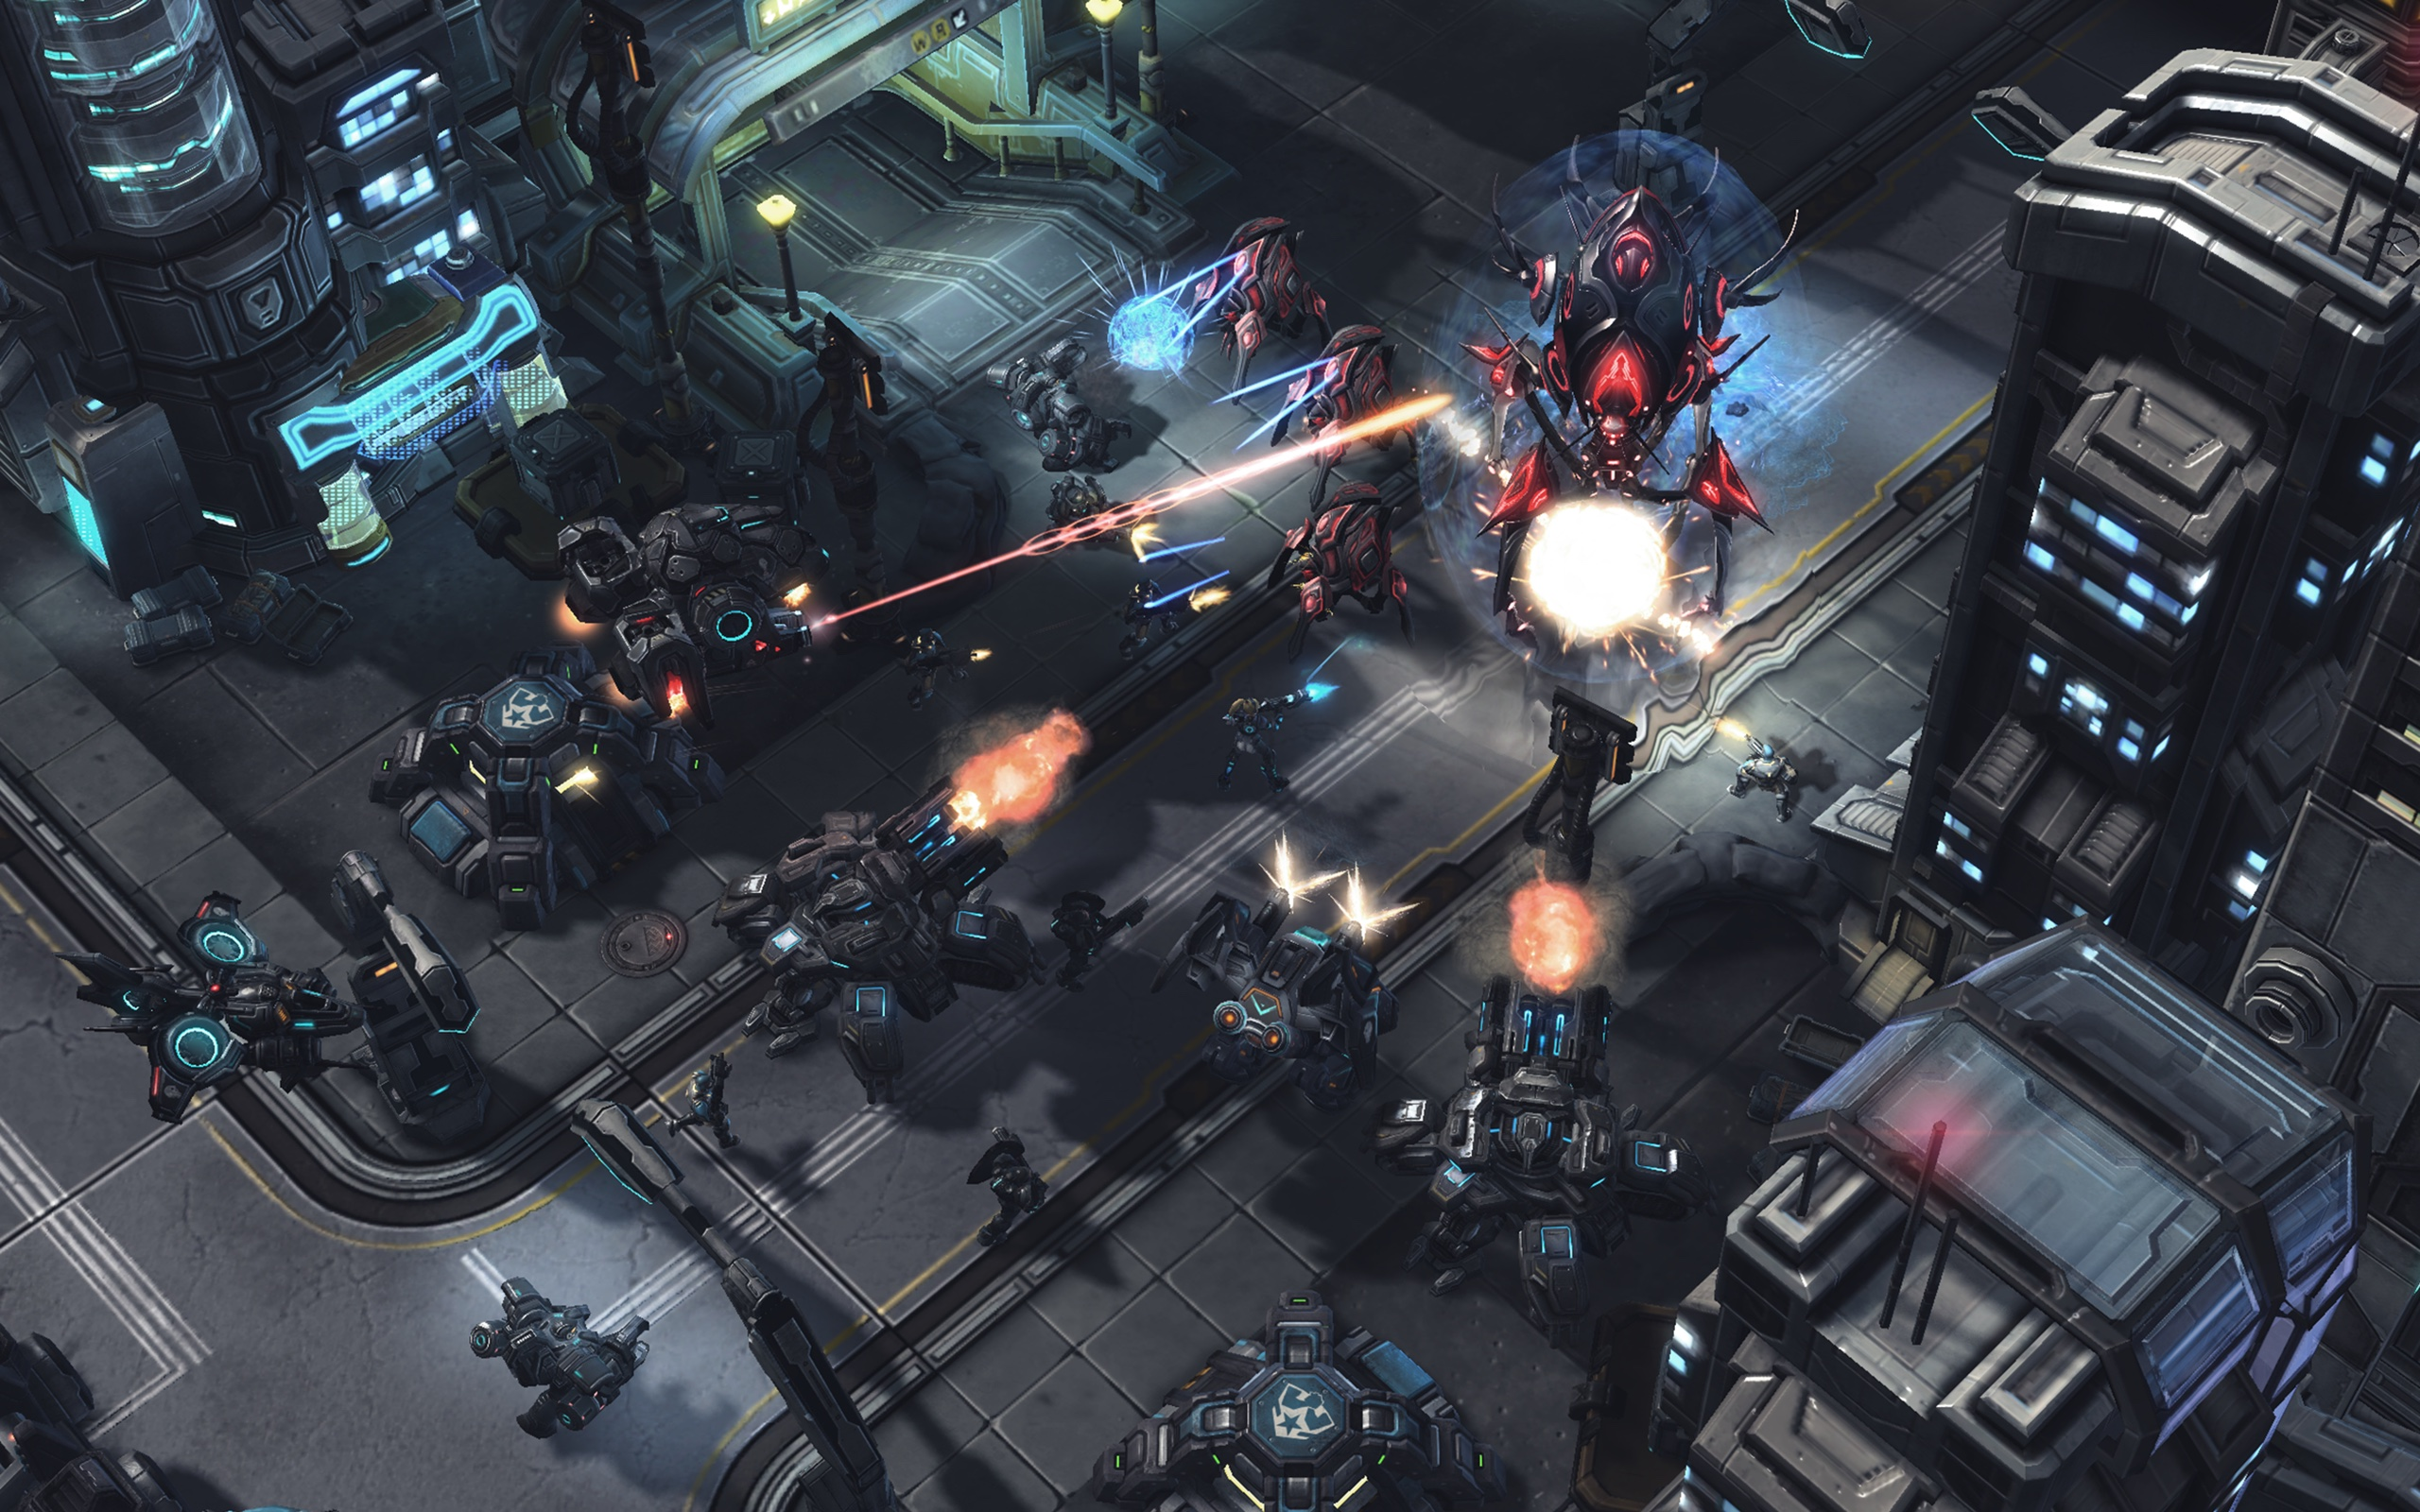 Starcraft 2 will be going free to play on November 14